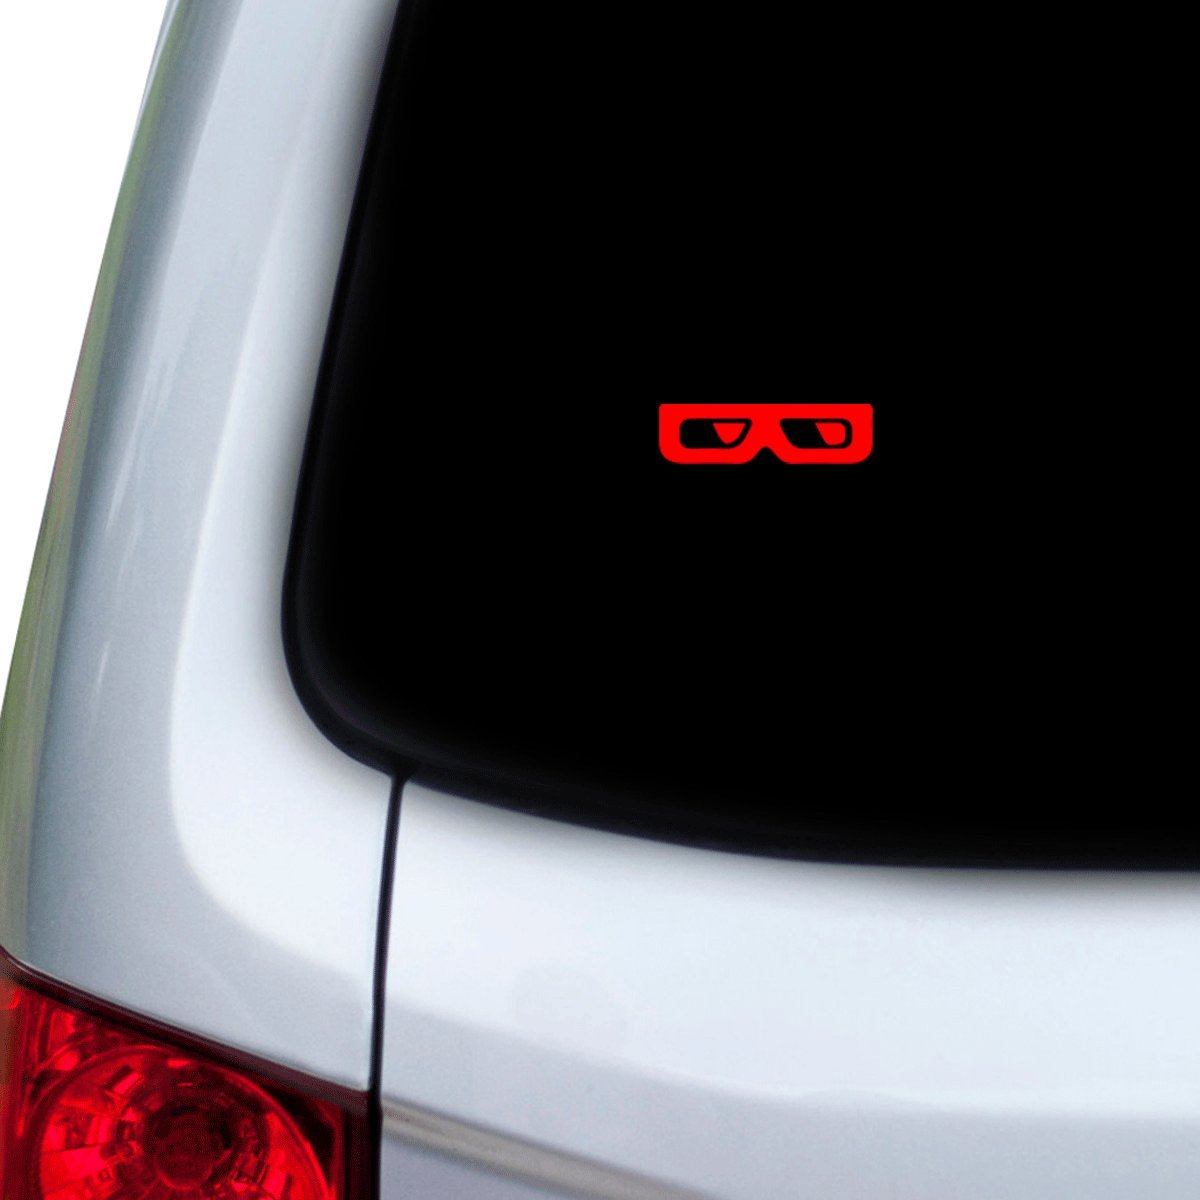 Hoods StickAny Car and Auto Decal Series 3D Glasses Frames Sticker for Windows Red Doors